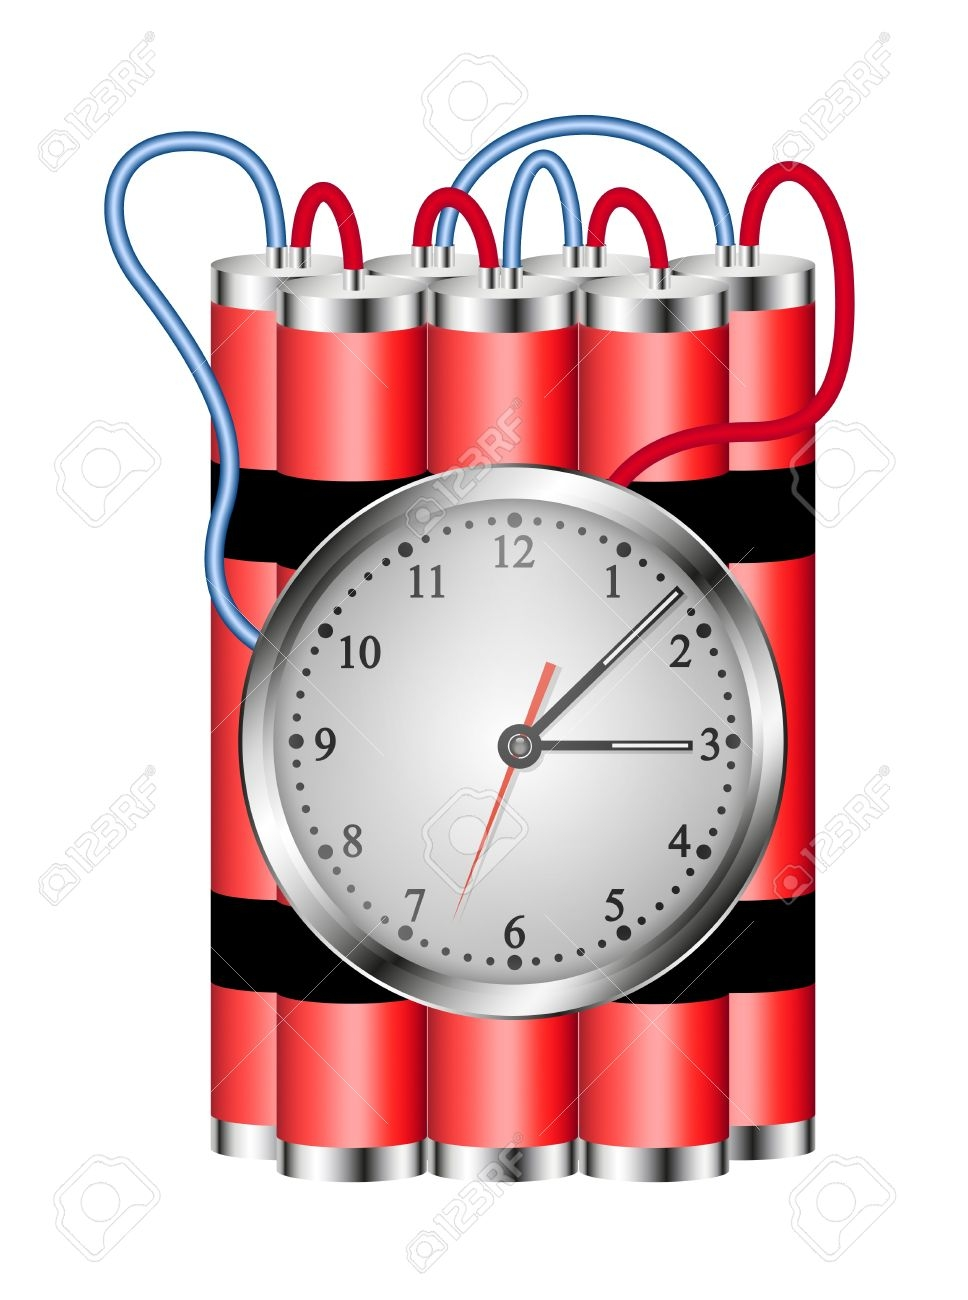 Time connected to clock. Bomb clipart dynamite